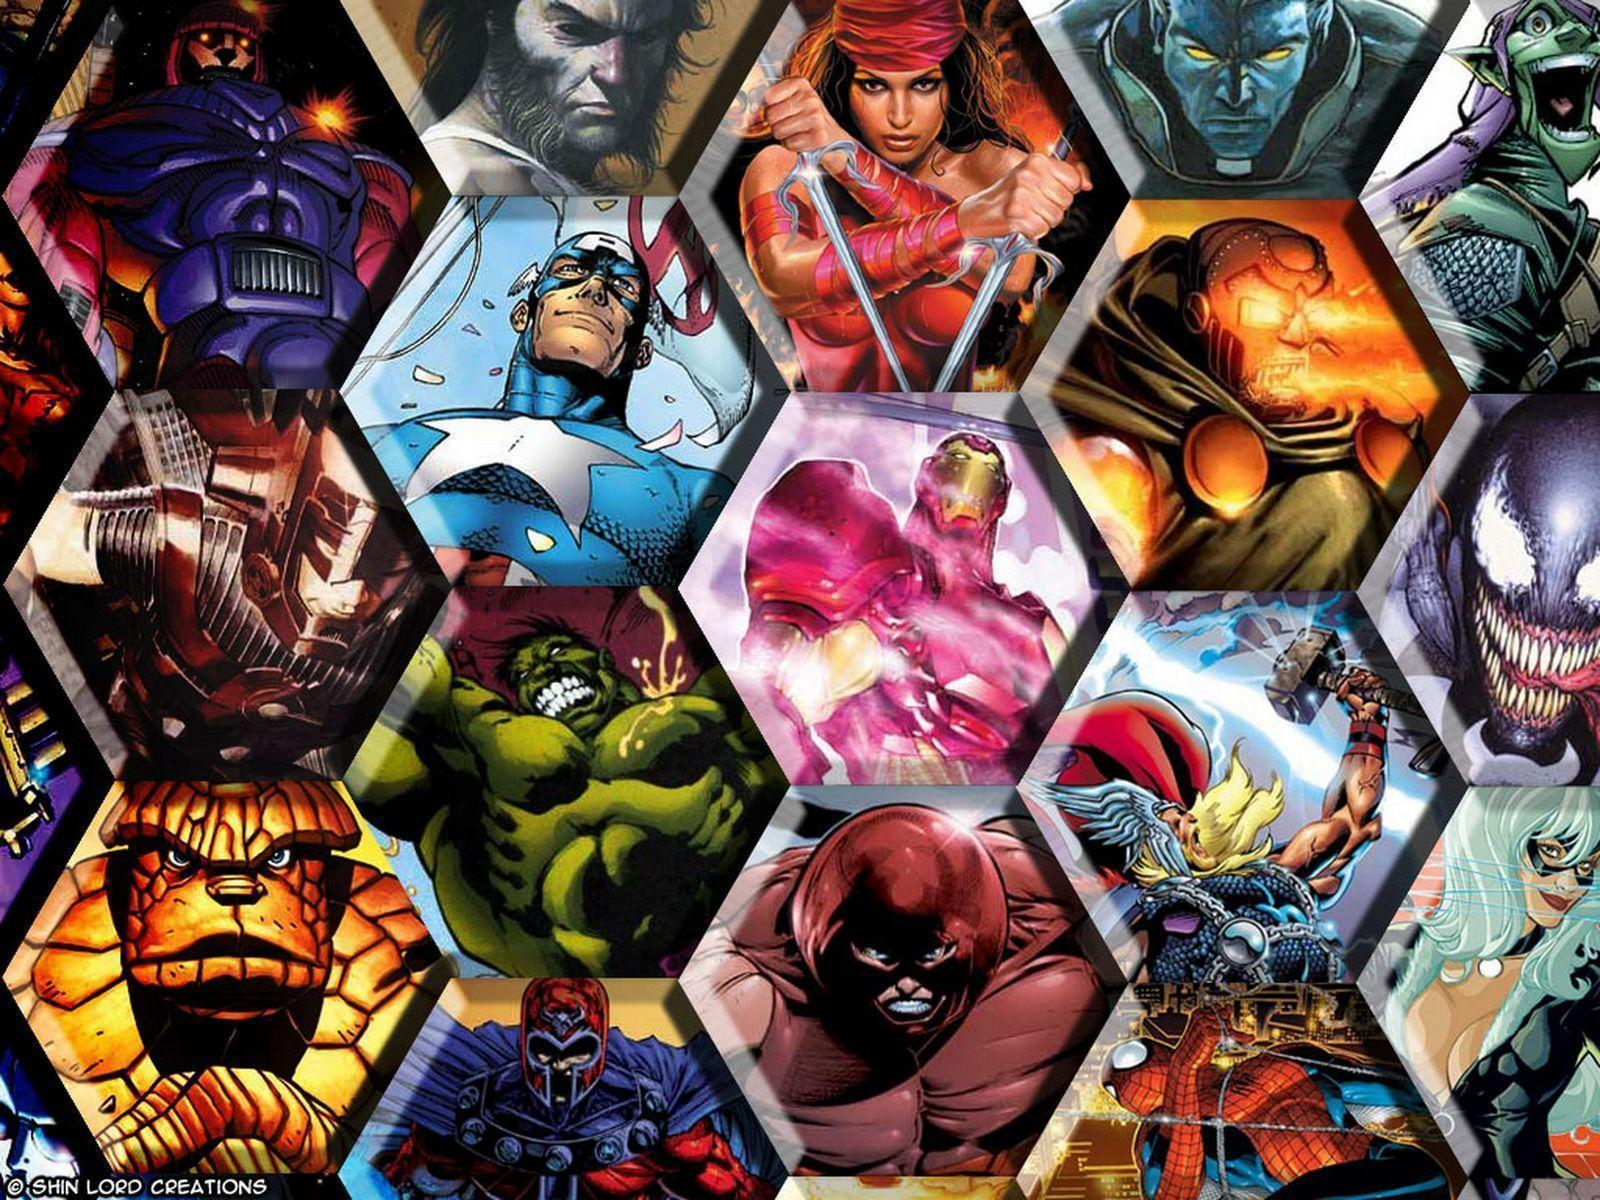 Fonds d'écran Marvel Comics : tous les wallpapers Marvel Comics